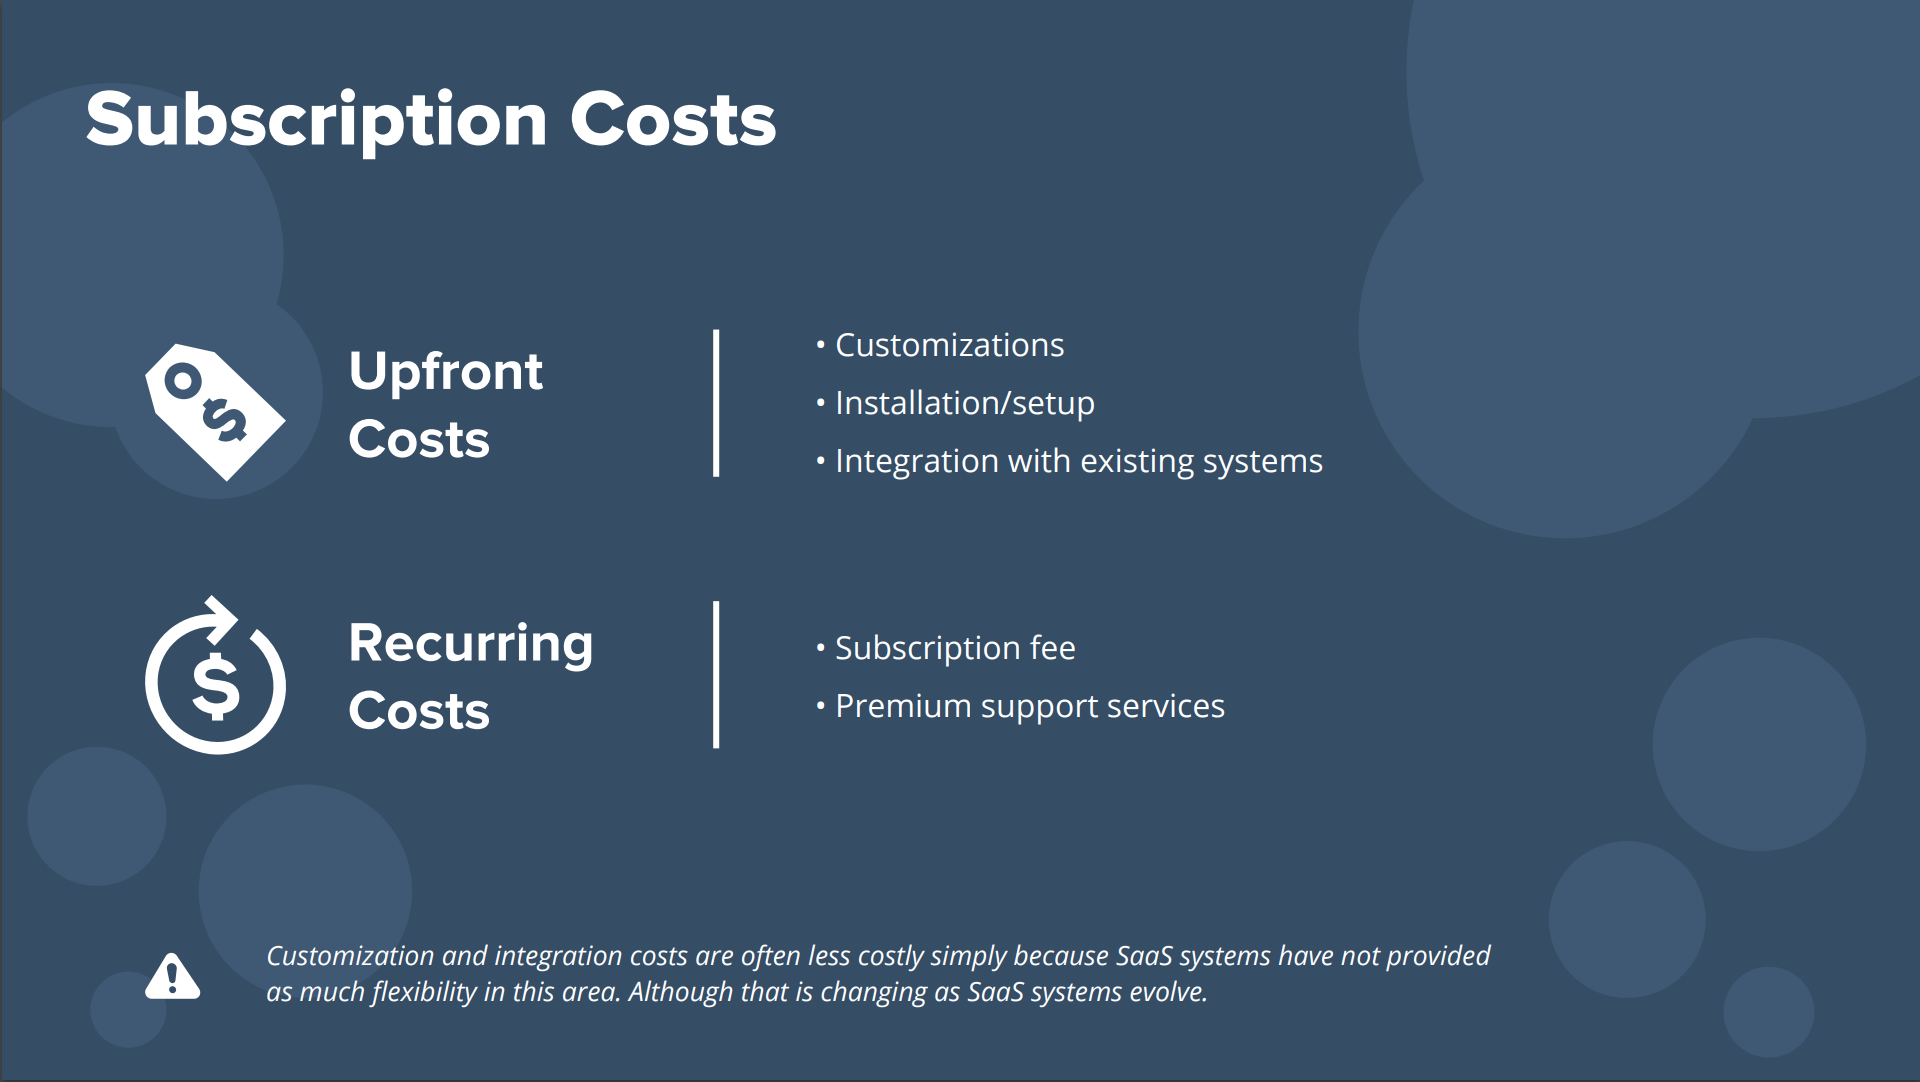 Subscription Costs for Accounting Software